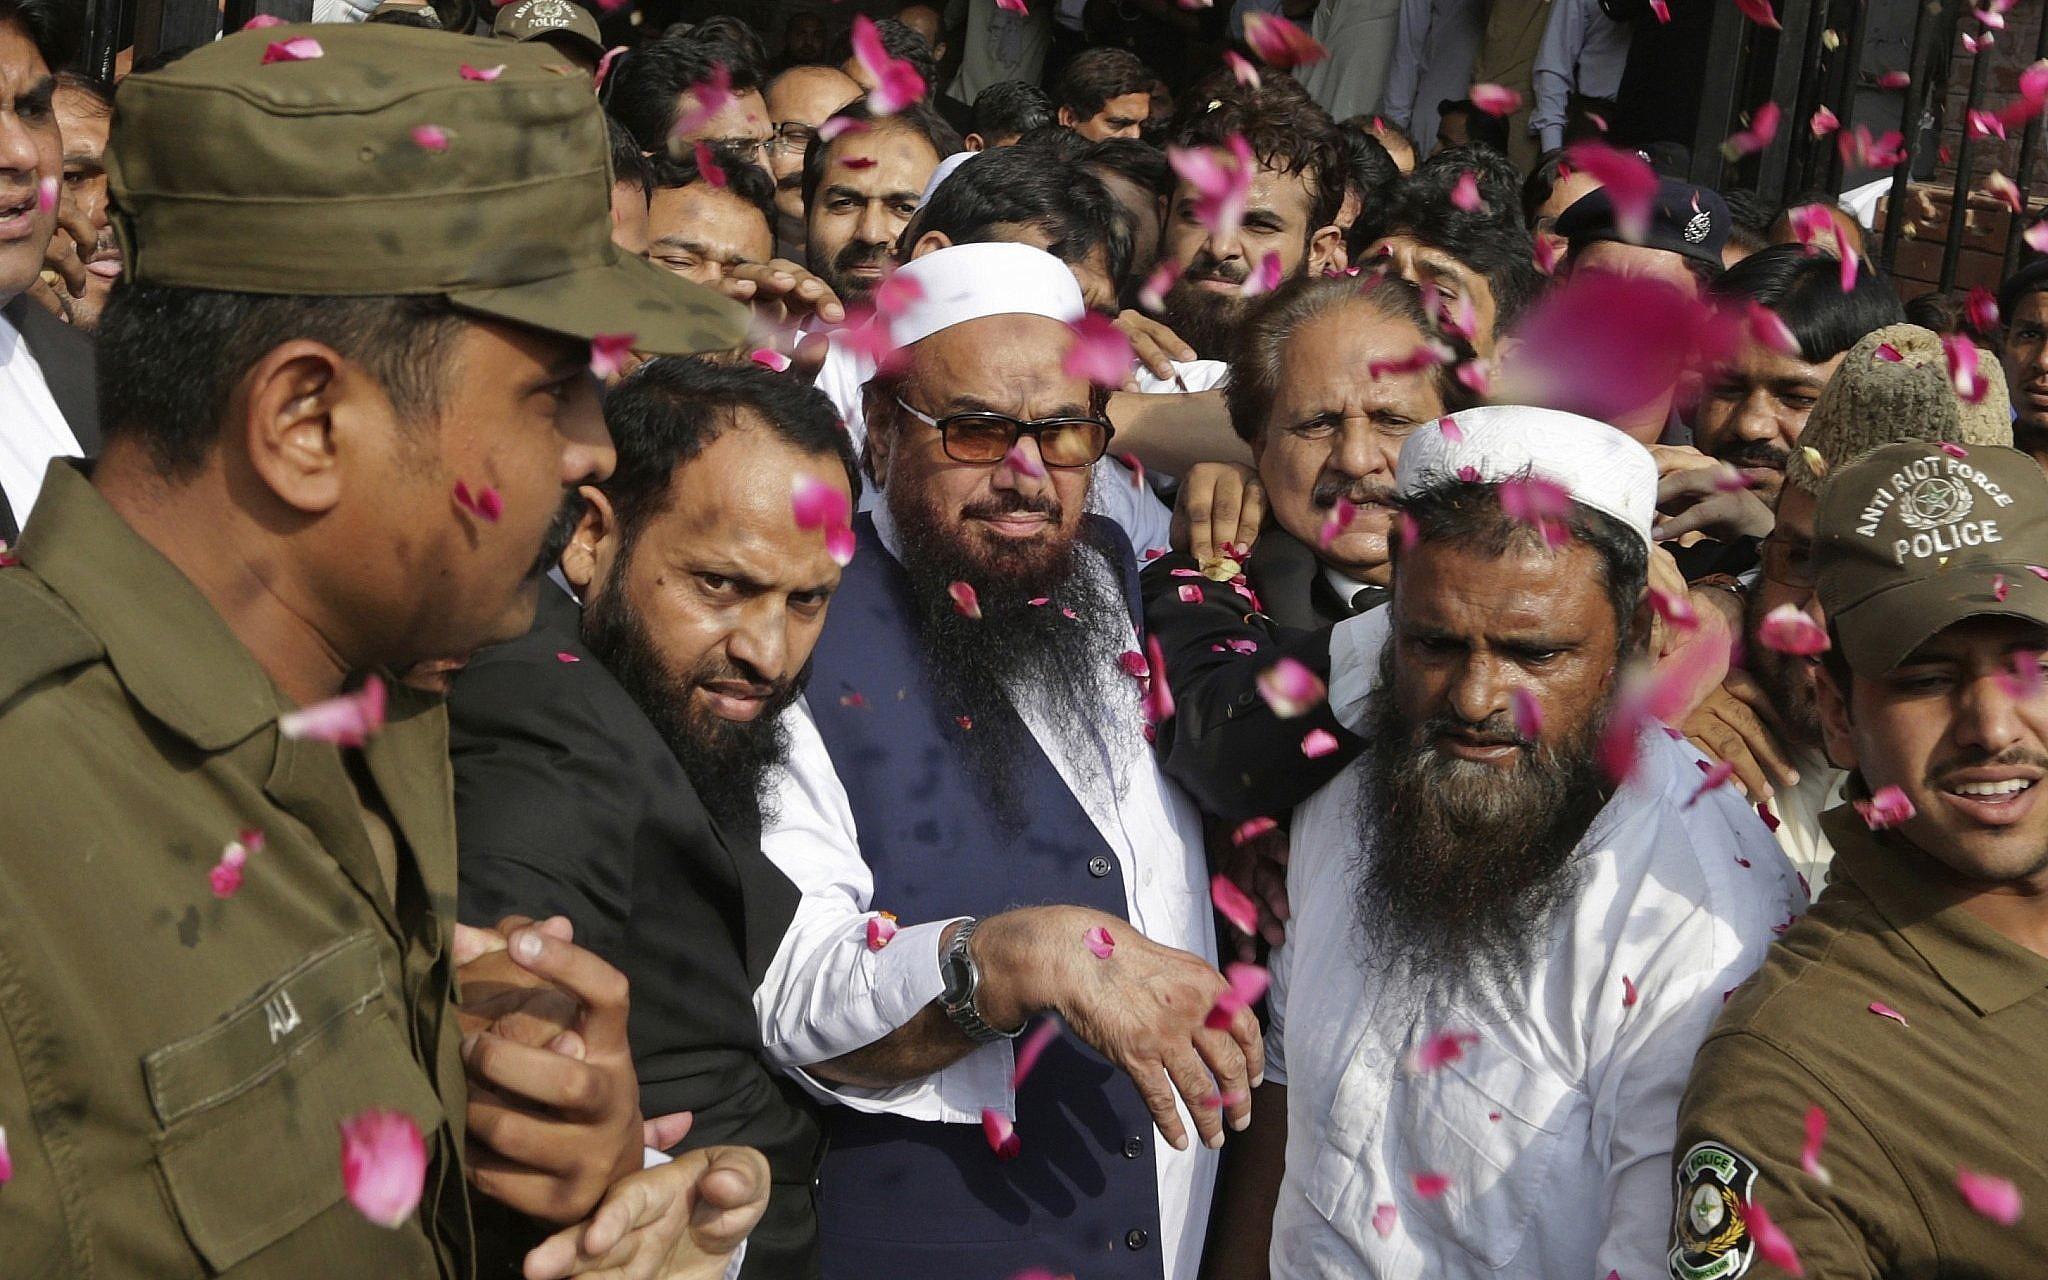 Will challenge Pakistan govt's 'illegal' ban on charities: Hafiz Saeed